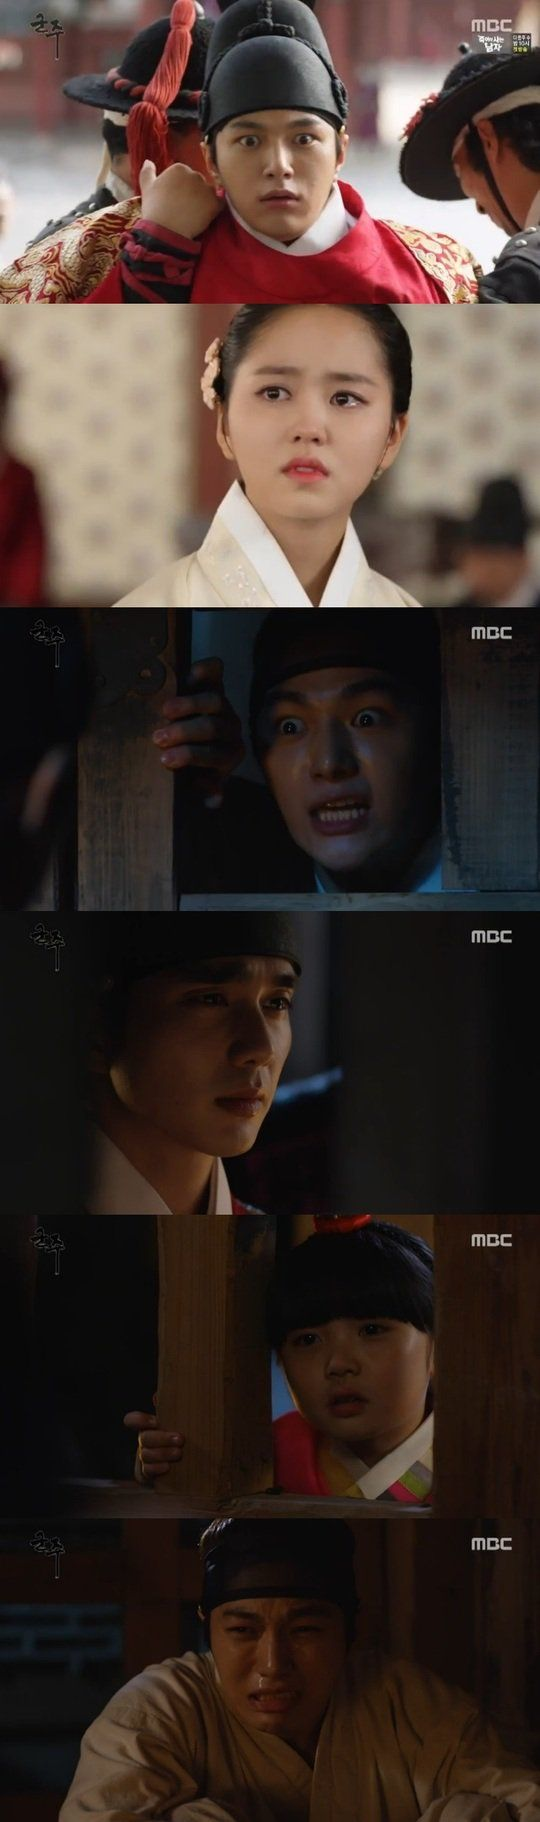 """[Spoiler] """"Ruler: Master of the Mask"""" L's mask comes off and falls to the ground"""